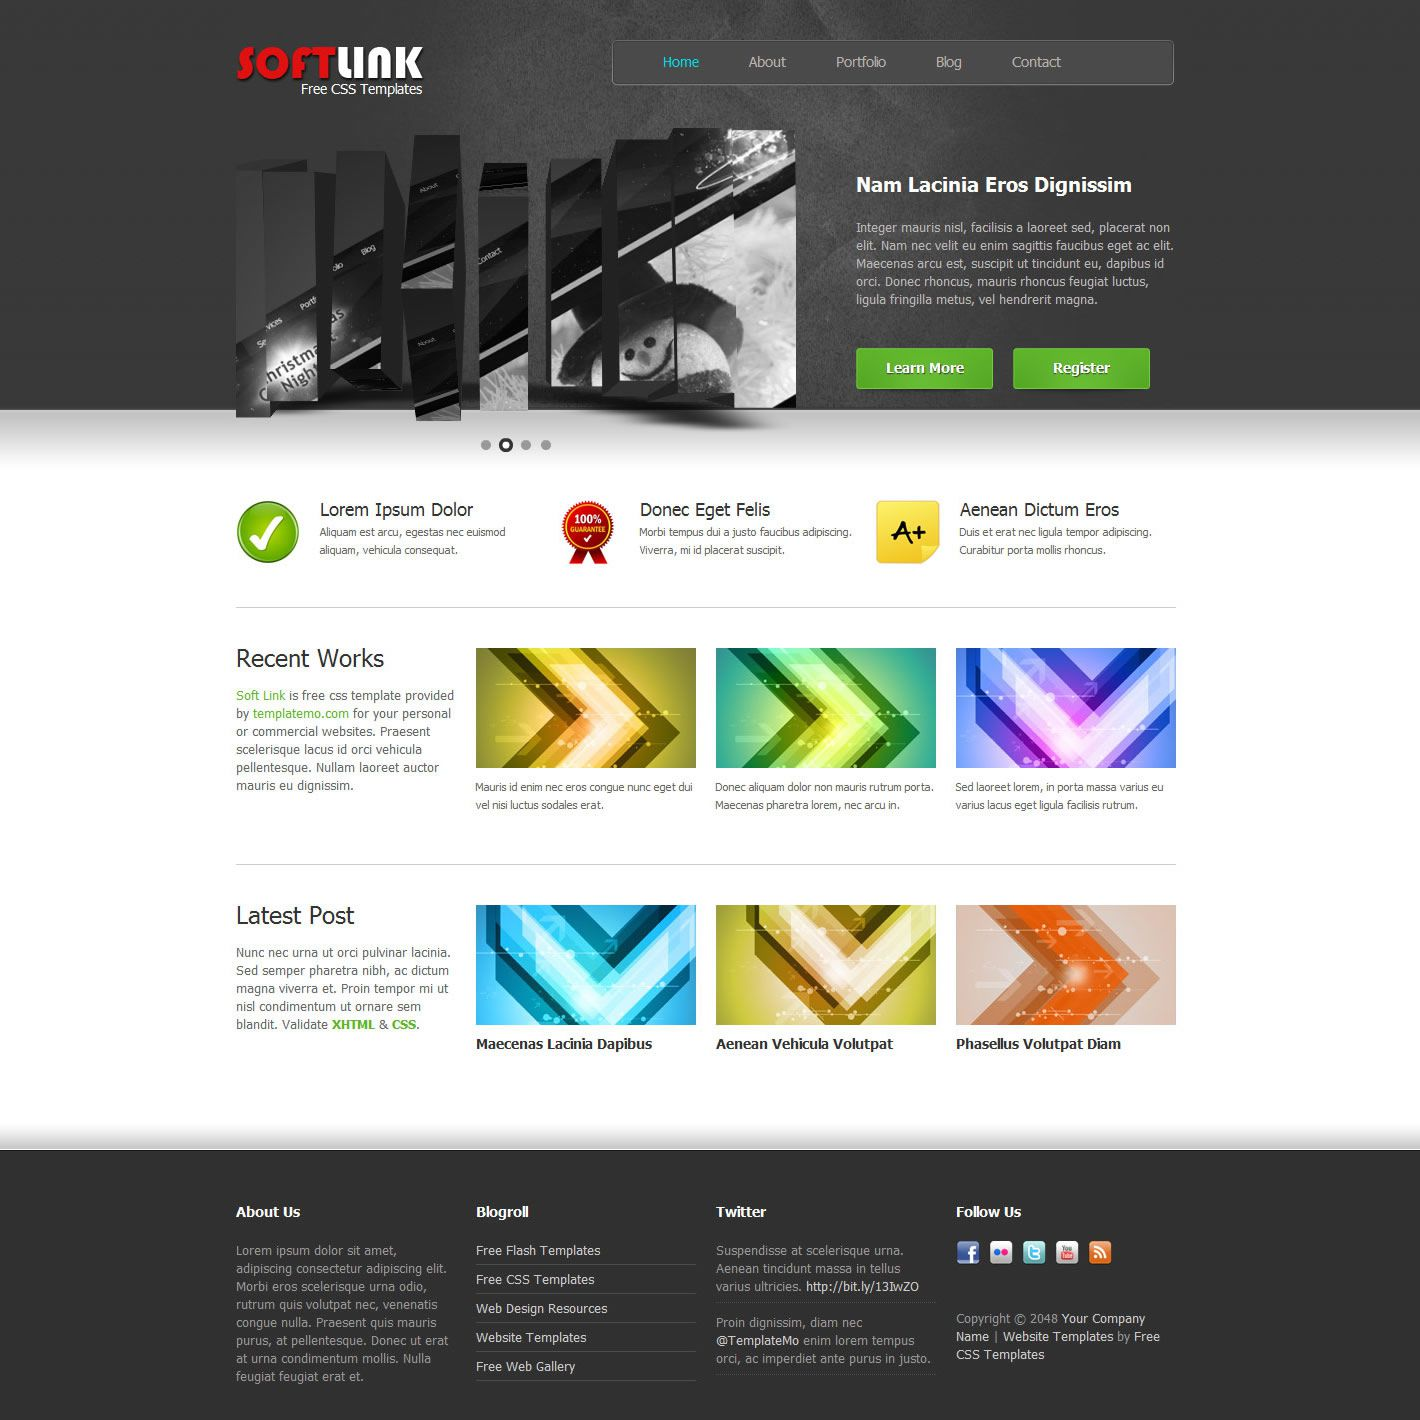 006 Incredible Google Sheet Invoice Template Concept Full